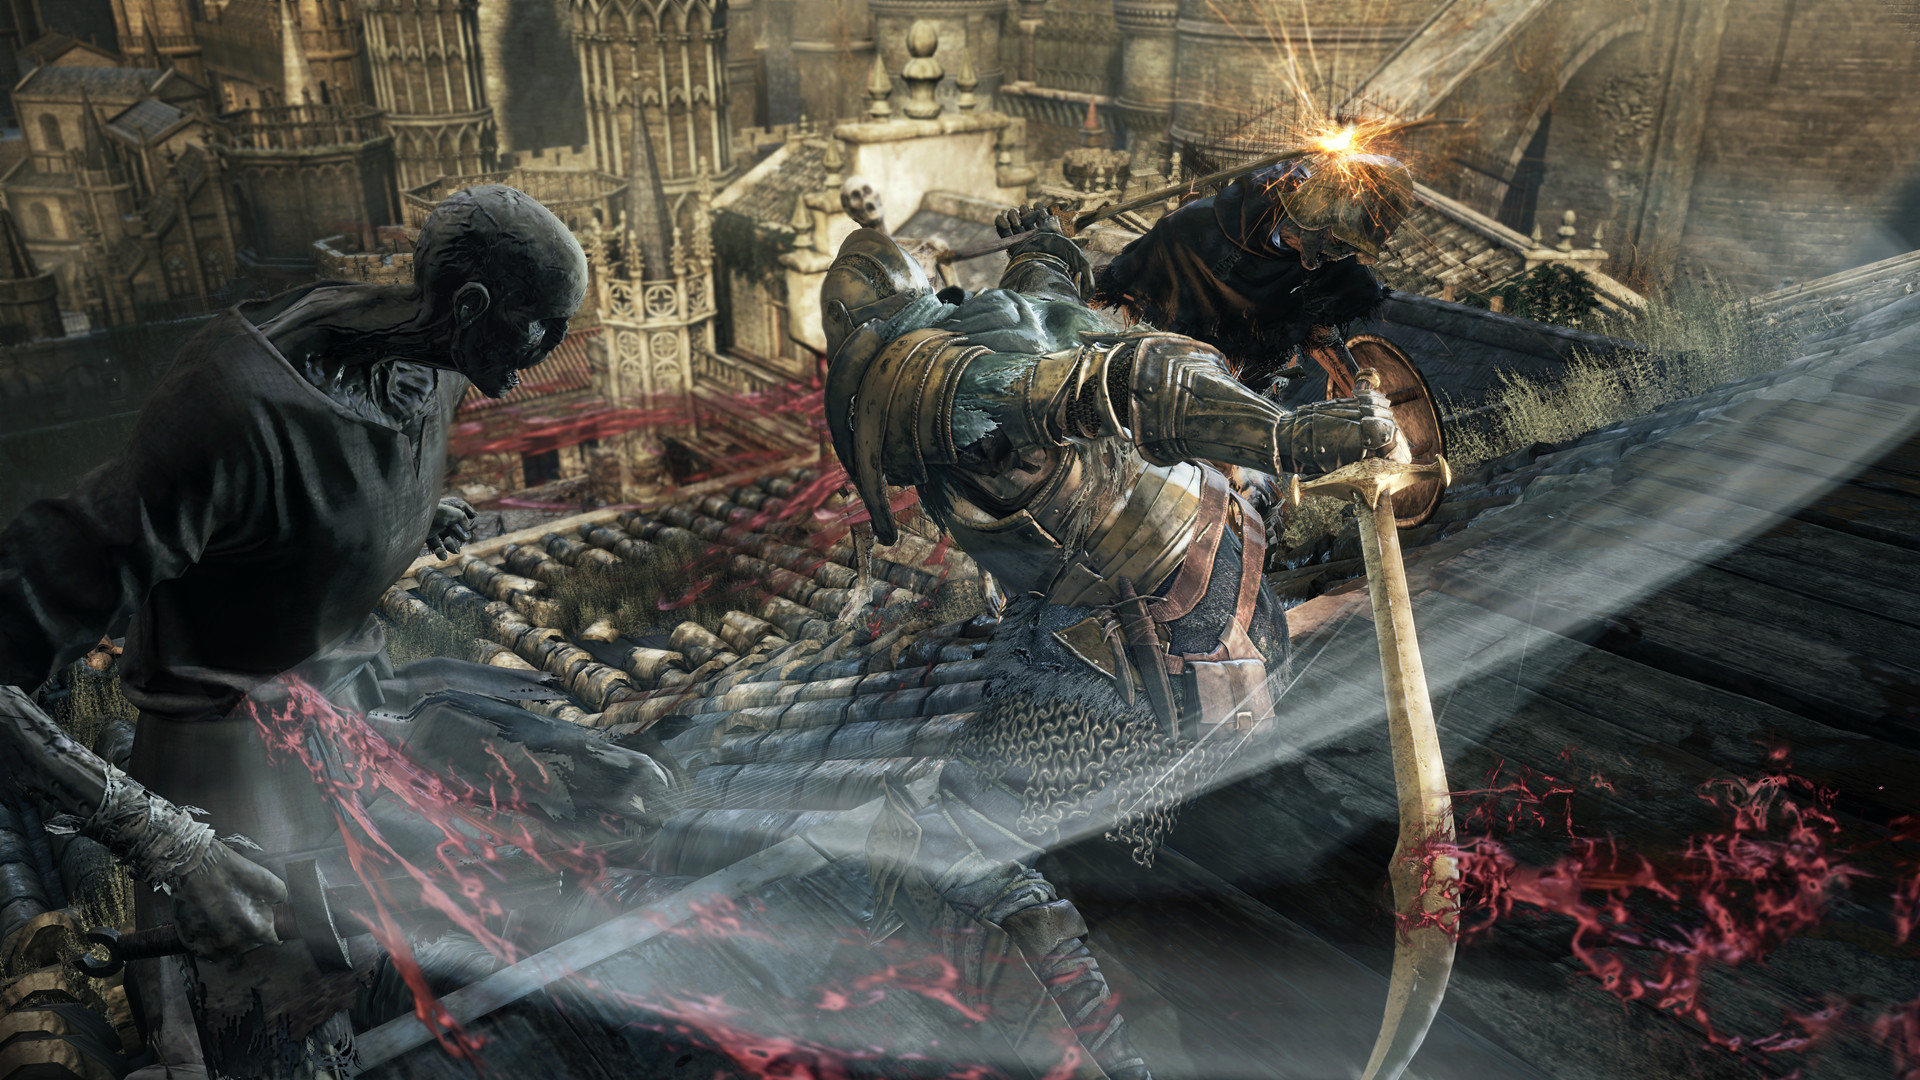 DARK SOULS III Download For Free